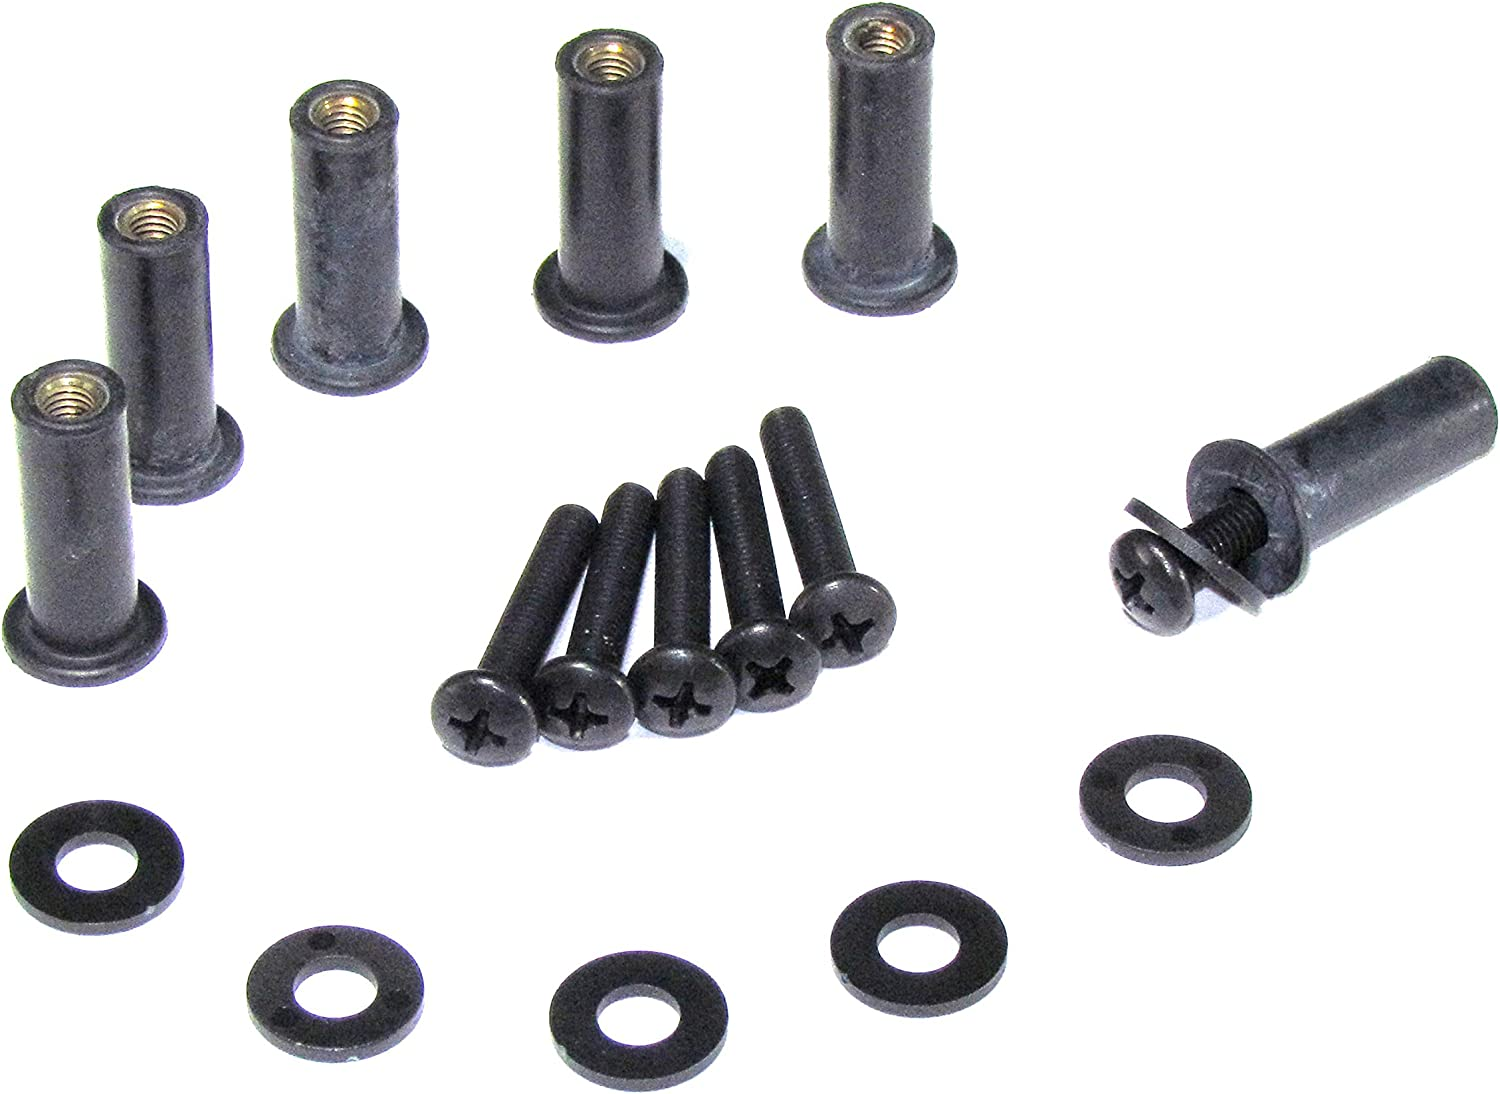 """Black 1 1//4/"""" Highway Bar Pegs by Show Chrome for V-Twin /& Metric NEW 21-334BK"""